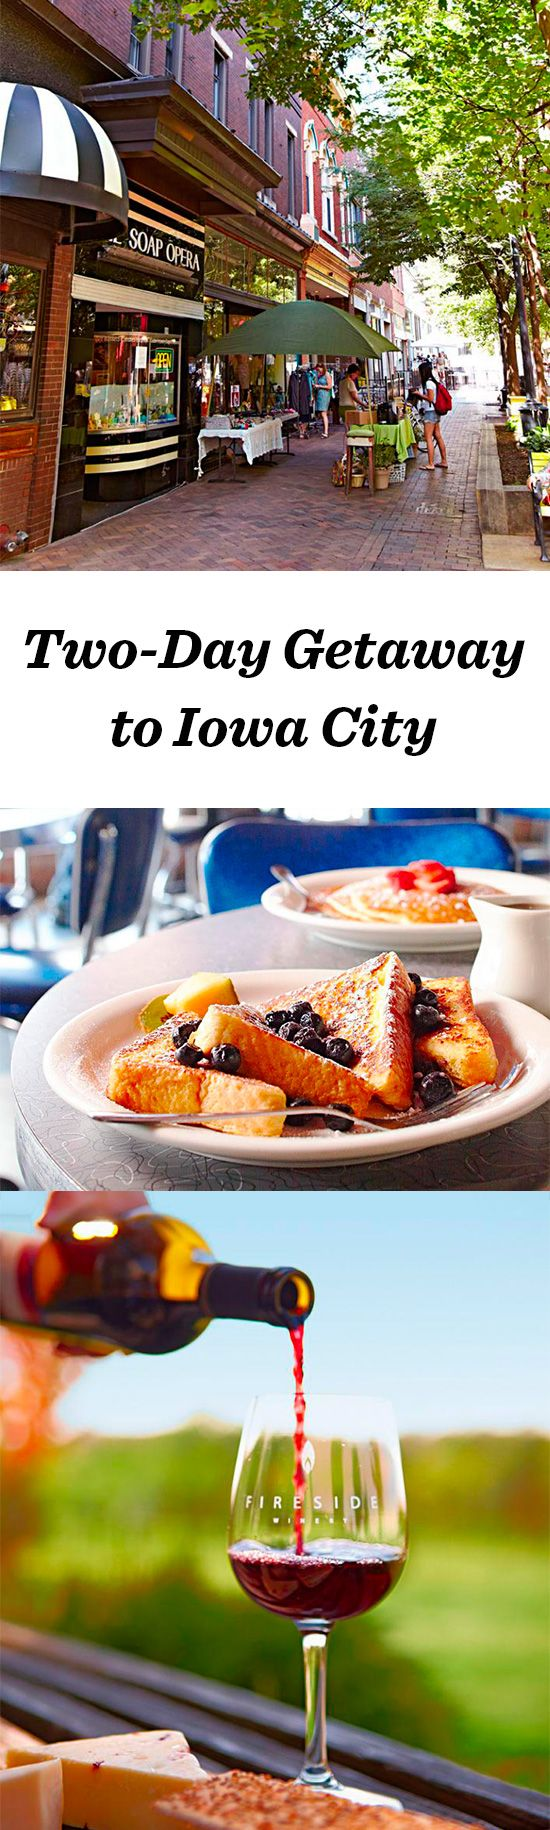 The University of Iowa anchors Iowa City, where an exciting cultural scene and eclectic dining options enliven a stay: http://www.midwestliving.com/travel/iowa/iowa-city/two-day-getaway-to-iowa-city/ #iowacity #iowa